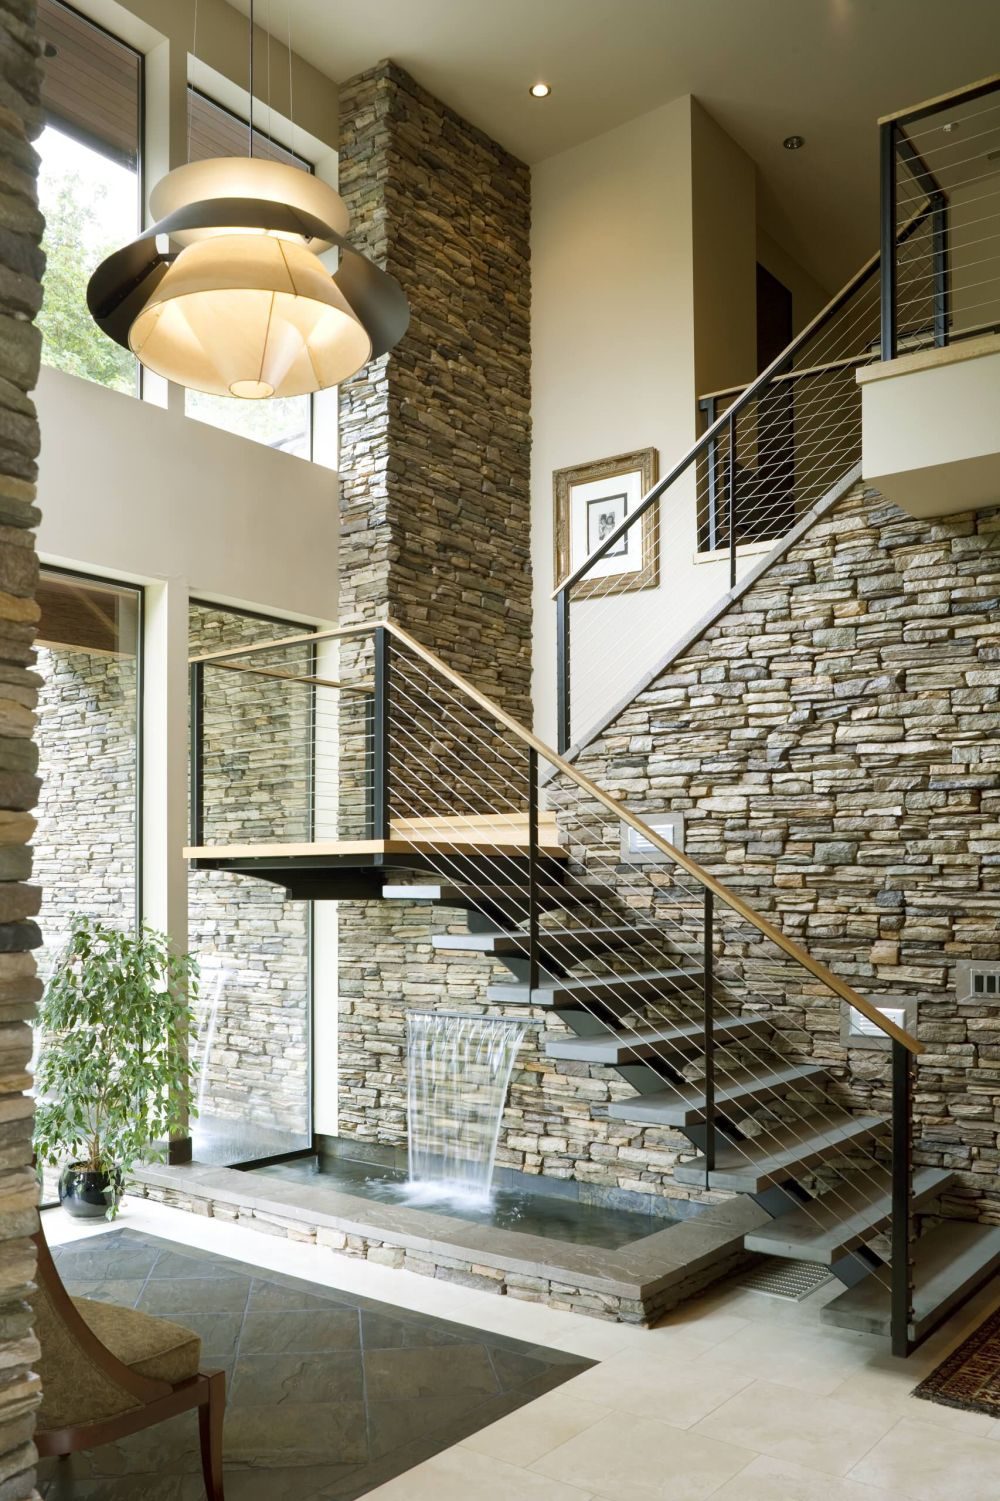 Charmant View In Gallery. An Interior Stone Wall ...